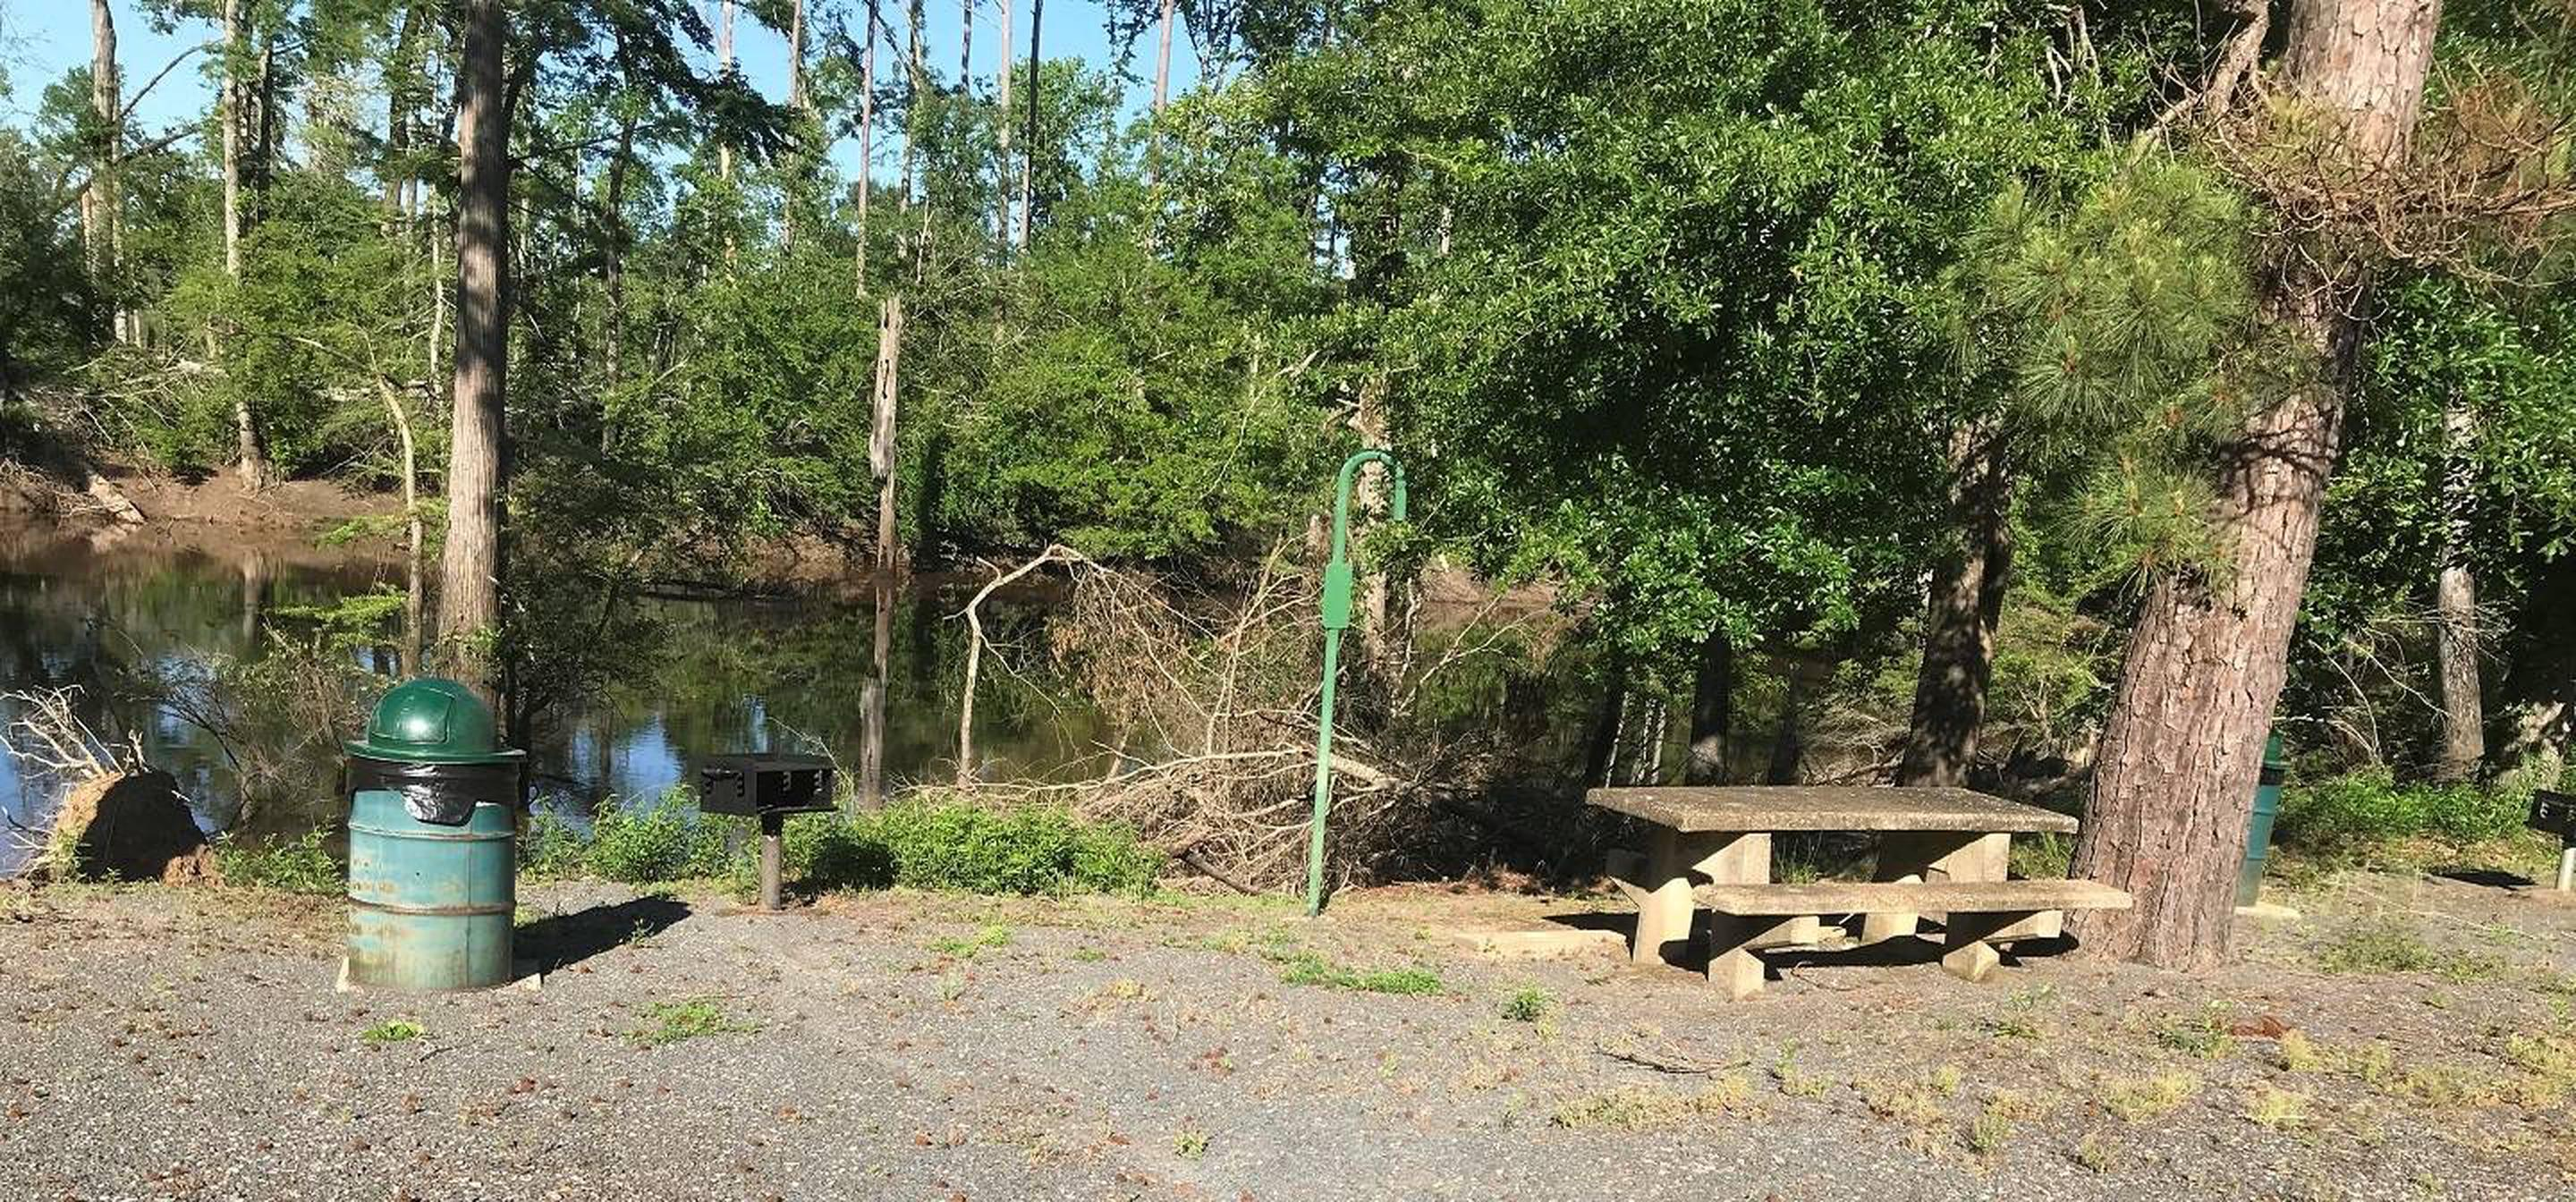 Campsite #3.Campsite #3. Tent site with the following amenities: fire-pit, grill, picnic table, lantern pole, trash can.  Located along bayou.